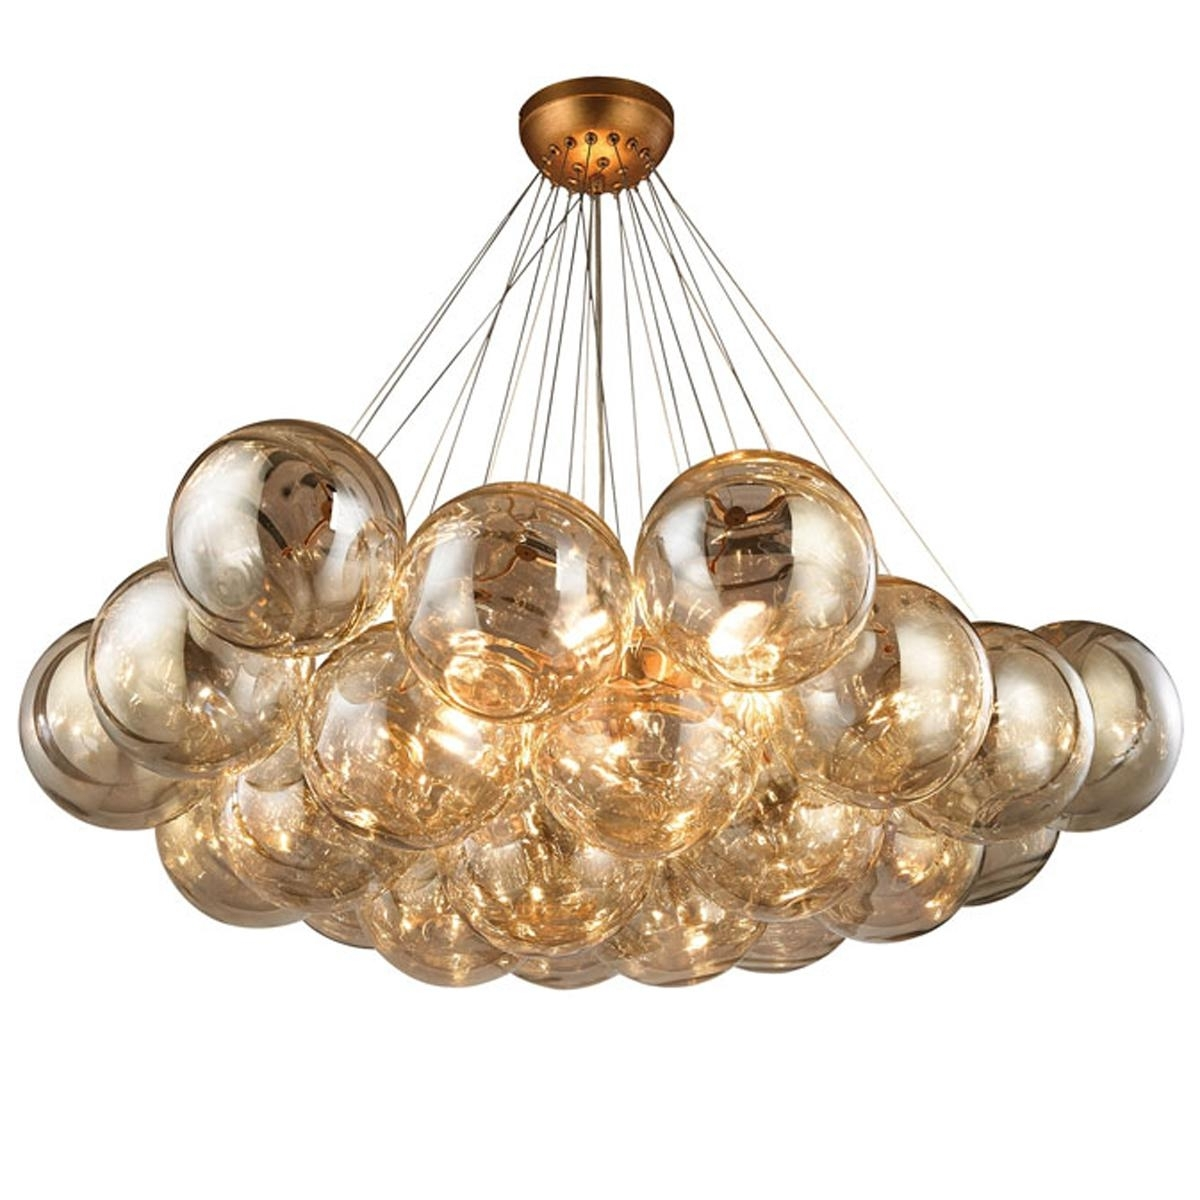 2019 Large Globe Chandelier For Large Foyer Multi Globe Chandelier – Trgn #4144f7bf (View 6 of 20)